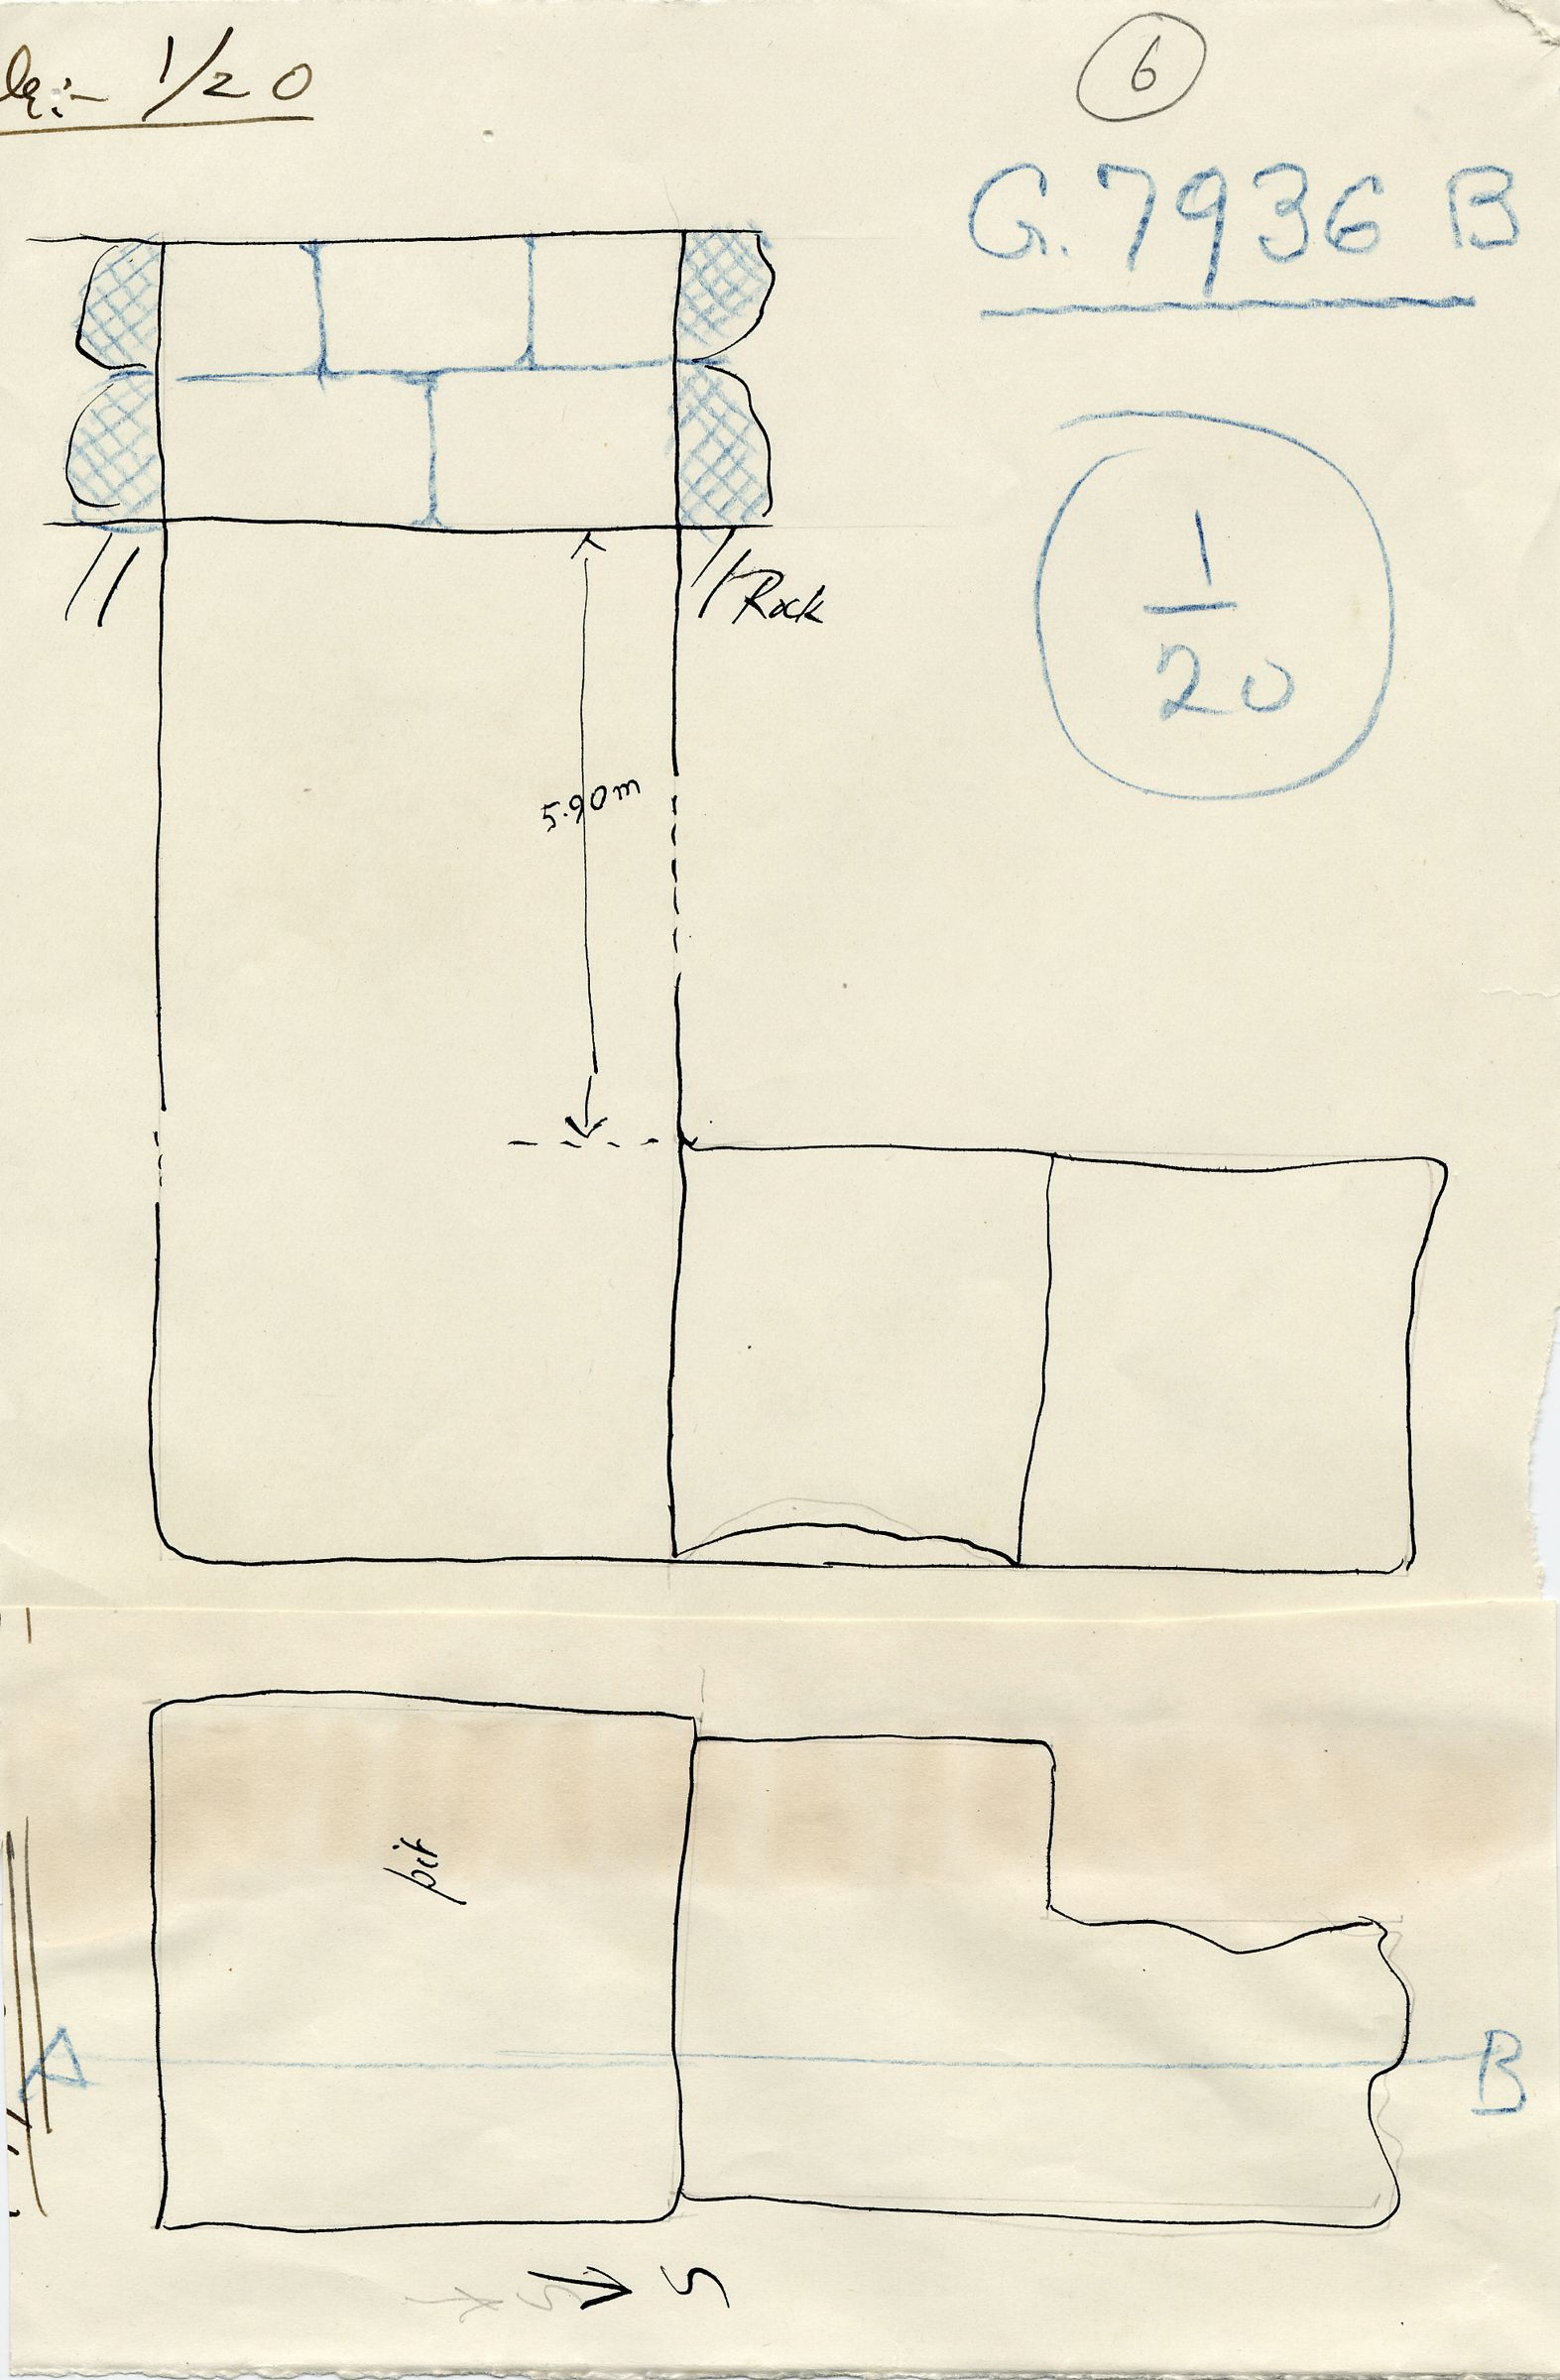 Maps and plans: G 7936, Shaft B